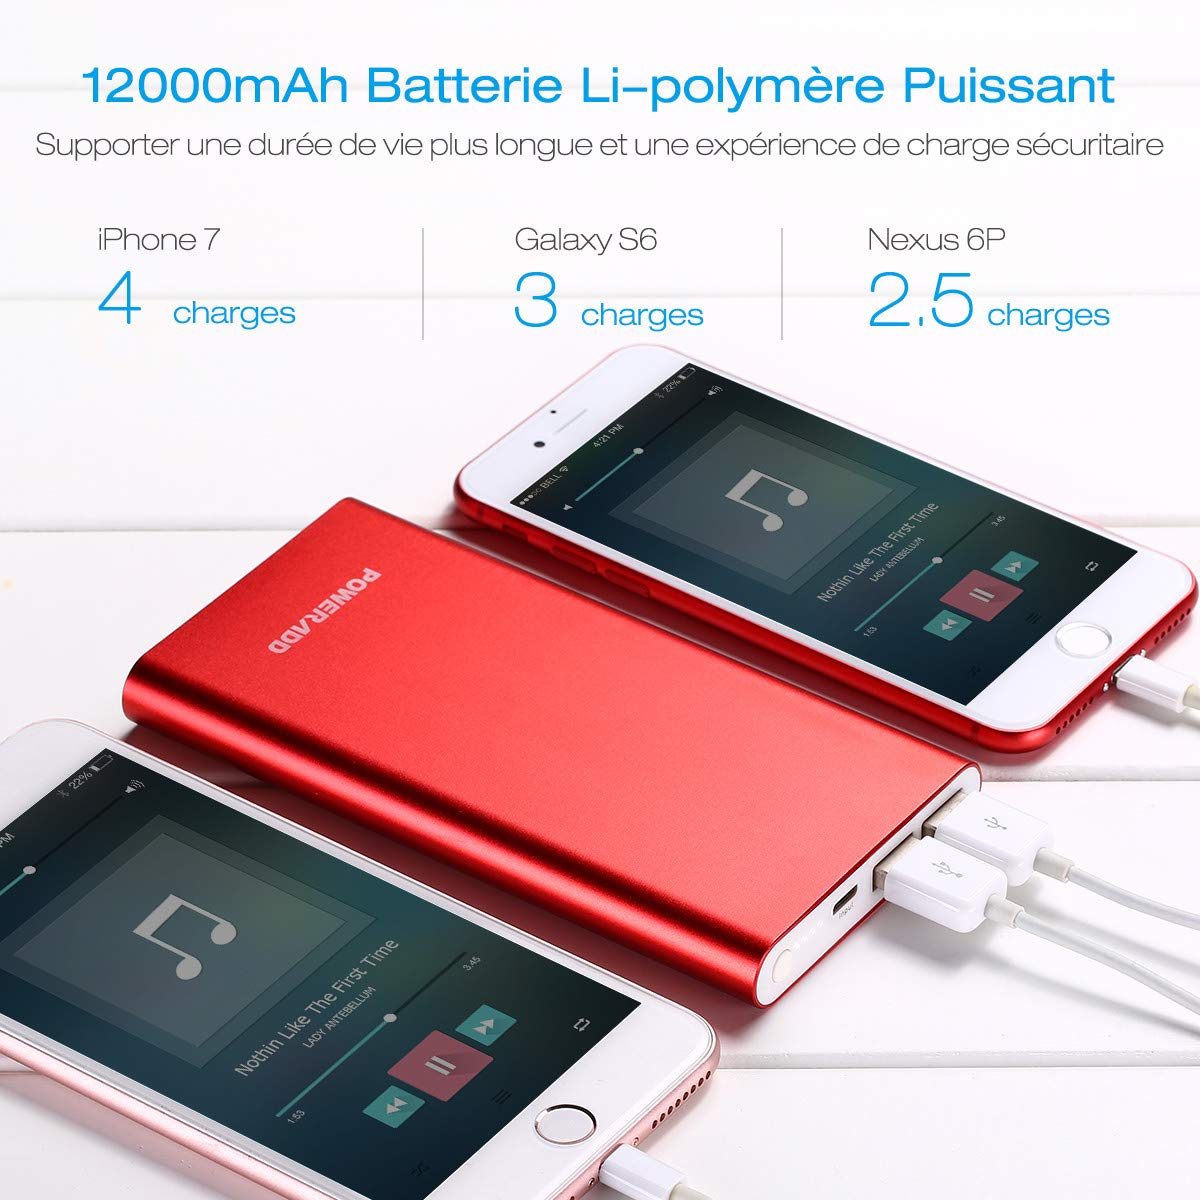 Poweradd Pilot 4GS 12000mAh Batterie Externe Portable Livré avec un Câble Apple Lightning pour iPhone7/7plus/8/iPhoneX, Samsung, Huawei, IPad, Galaxy S6 etc- Rouge Doré